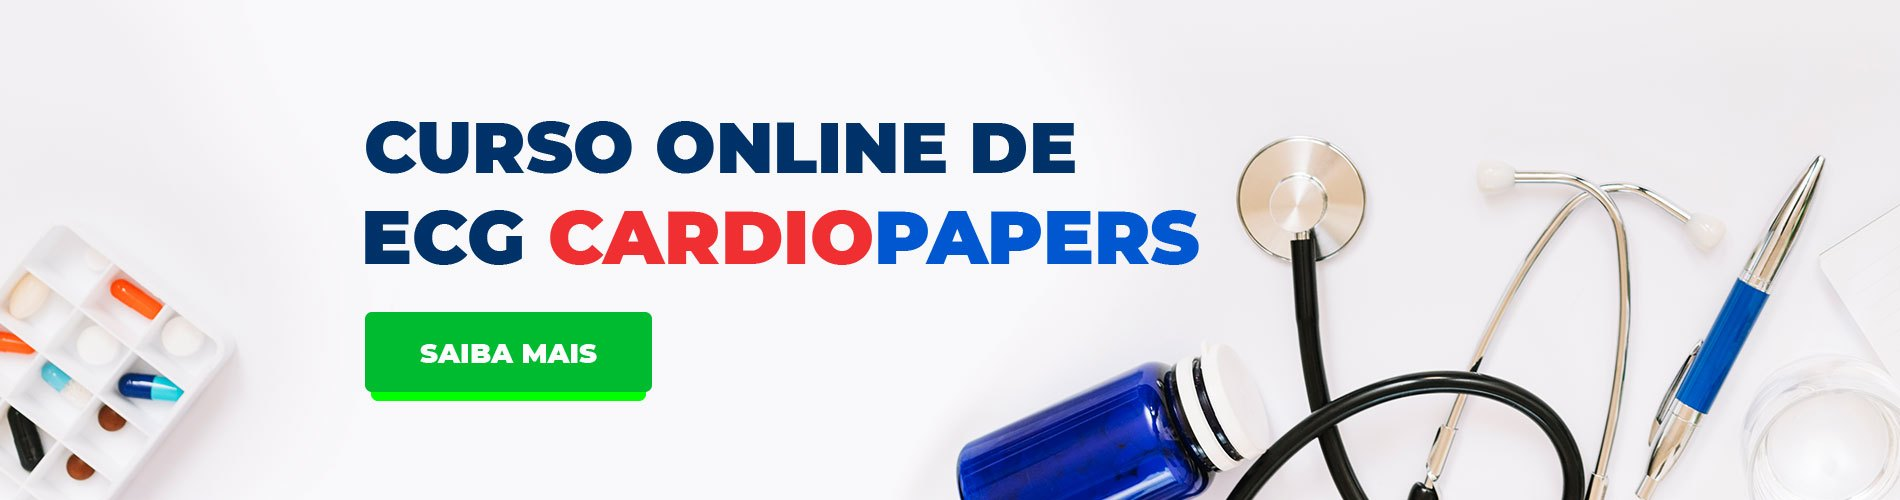 Cardiopapers dia do cardiologista banner